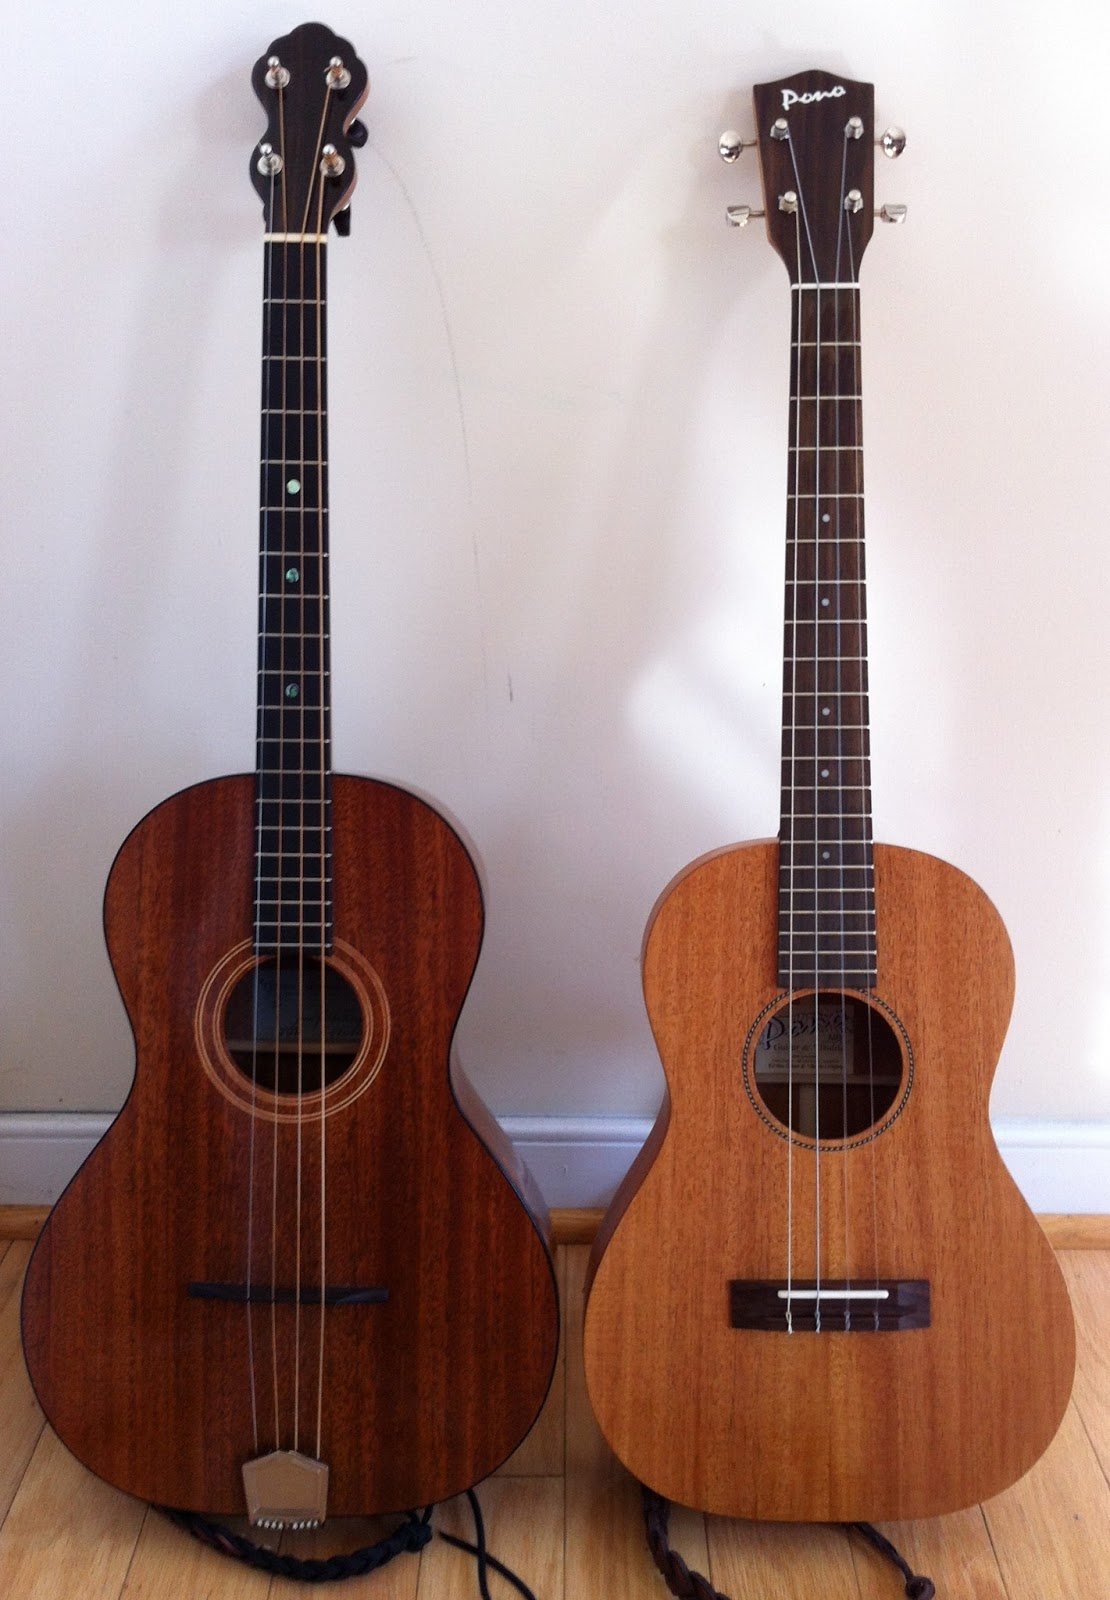 Six Water Grog: Say old man, is that a tenor guitar or a baritone ukulele?